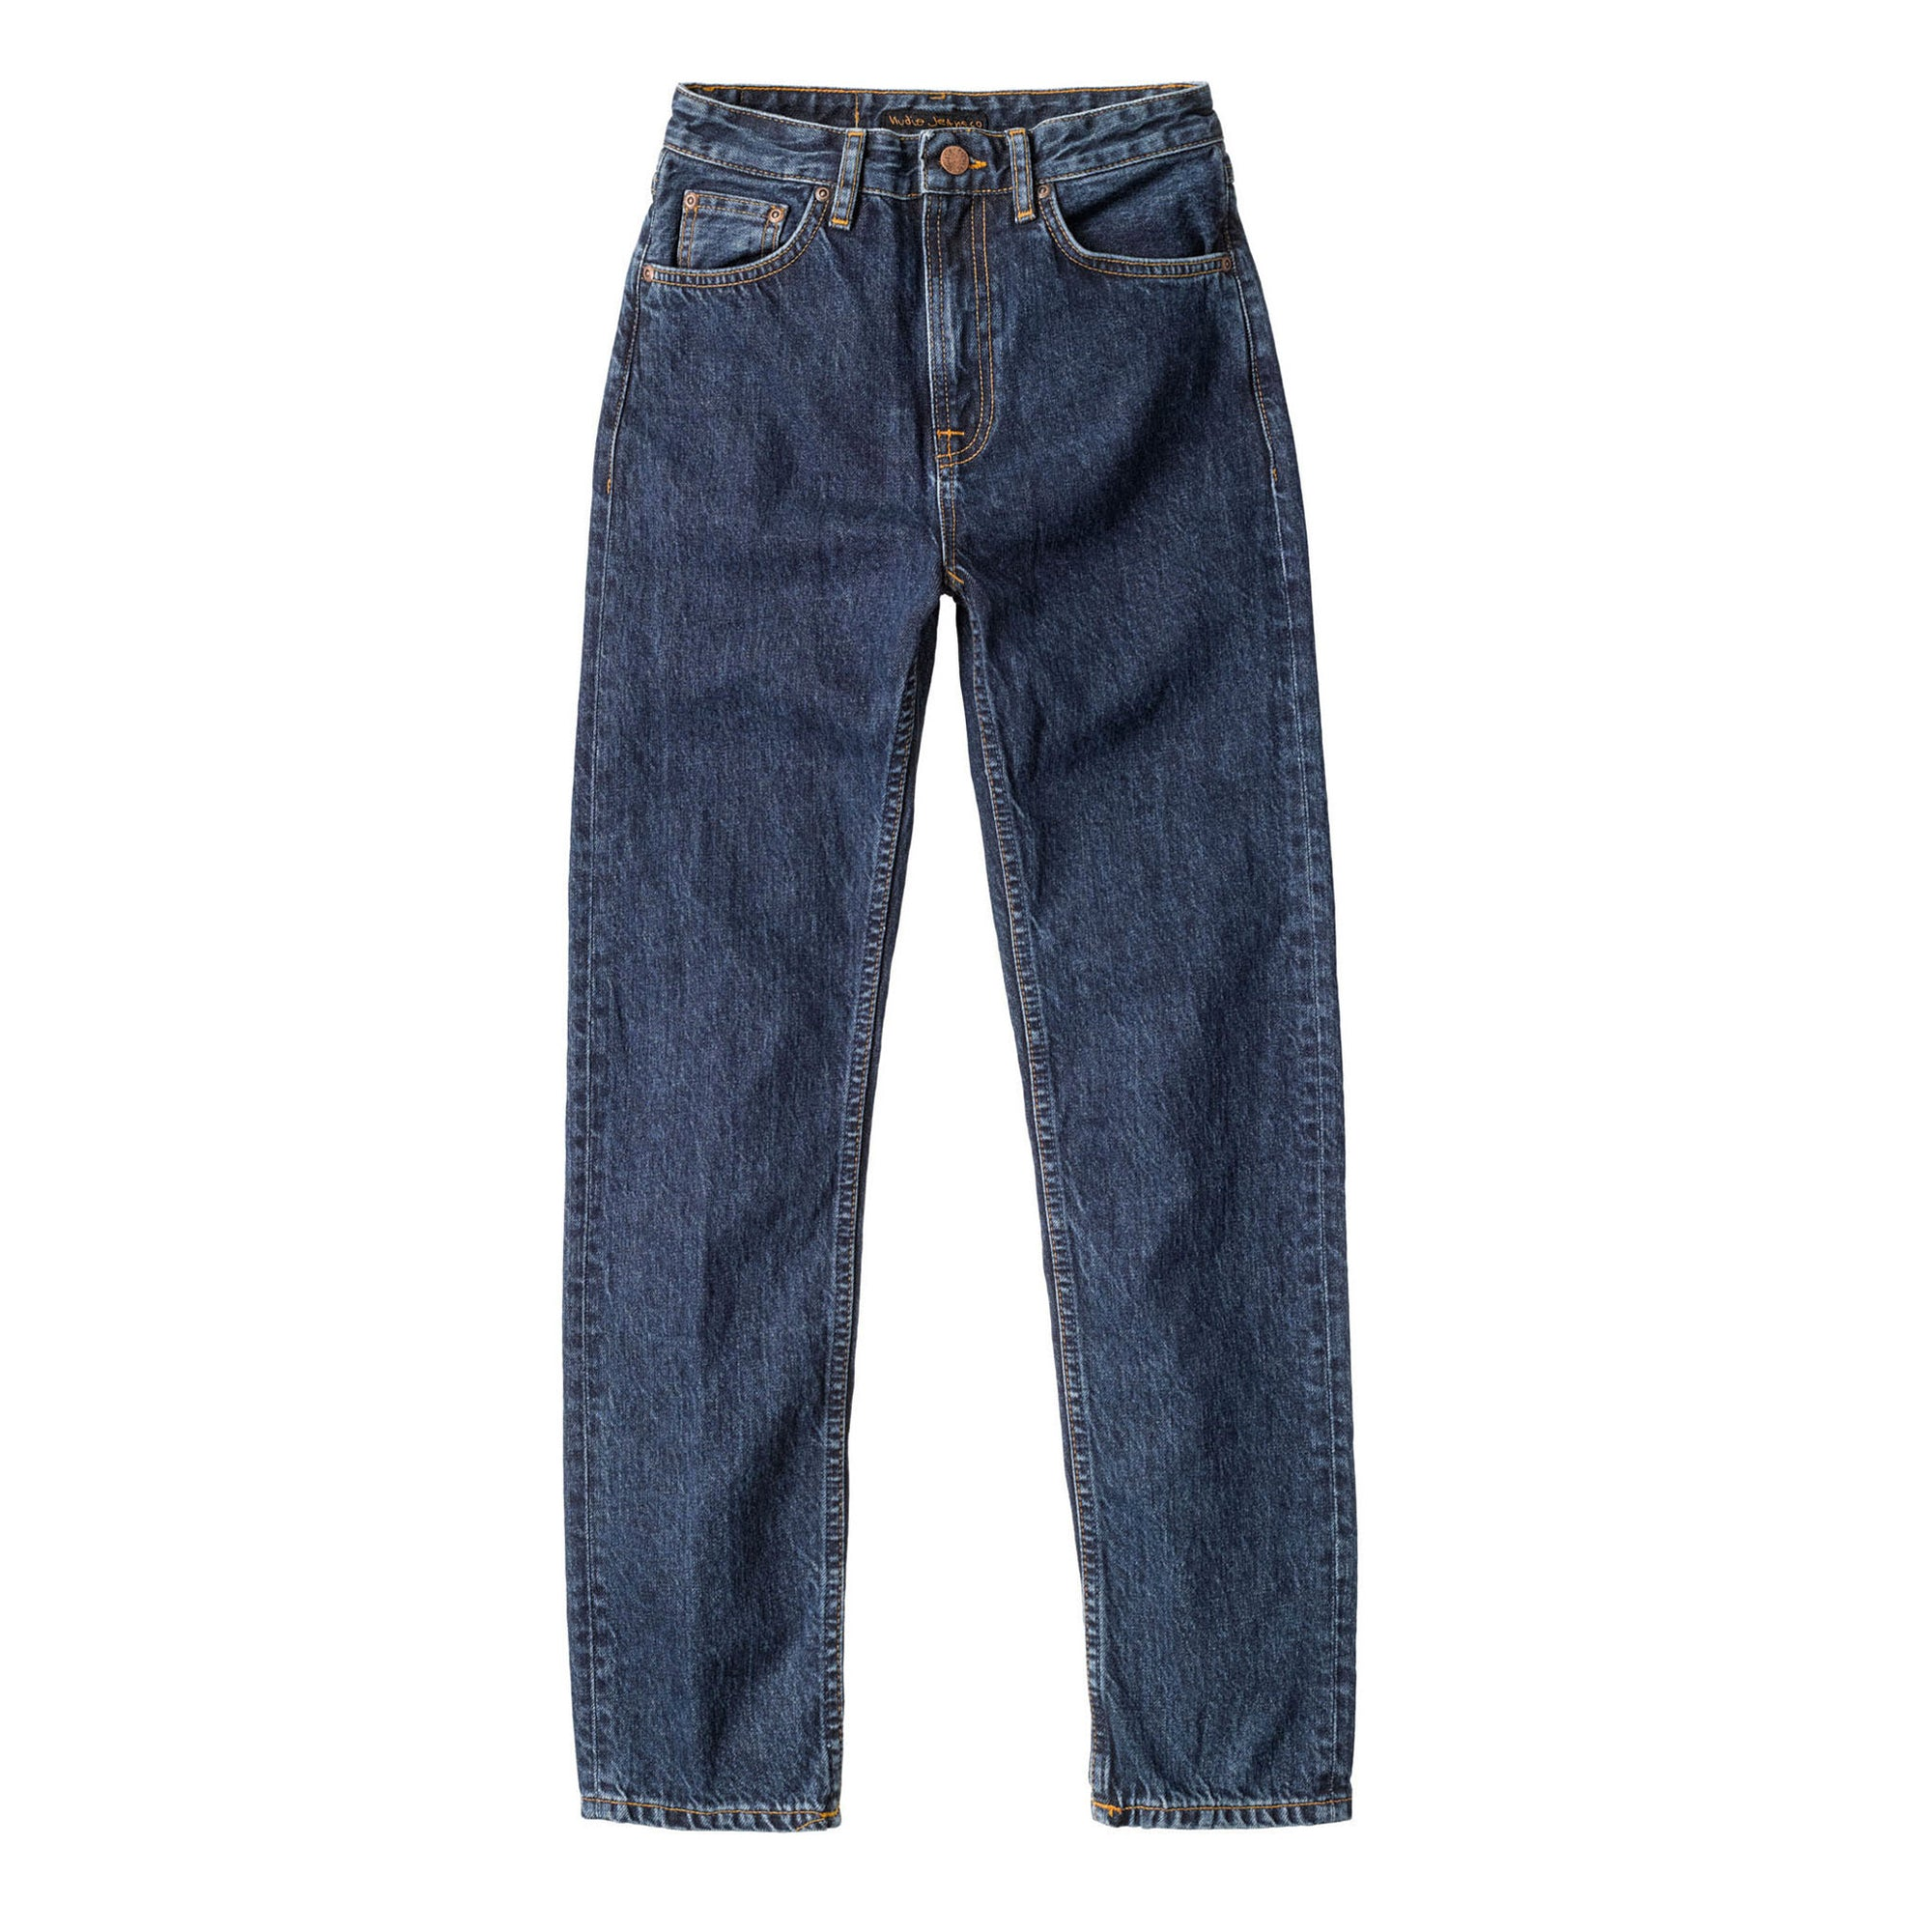 Nudie Jeans Womens Breezy Brit: Dark Stellar - The Union Project